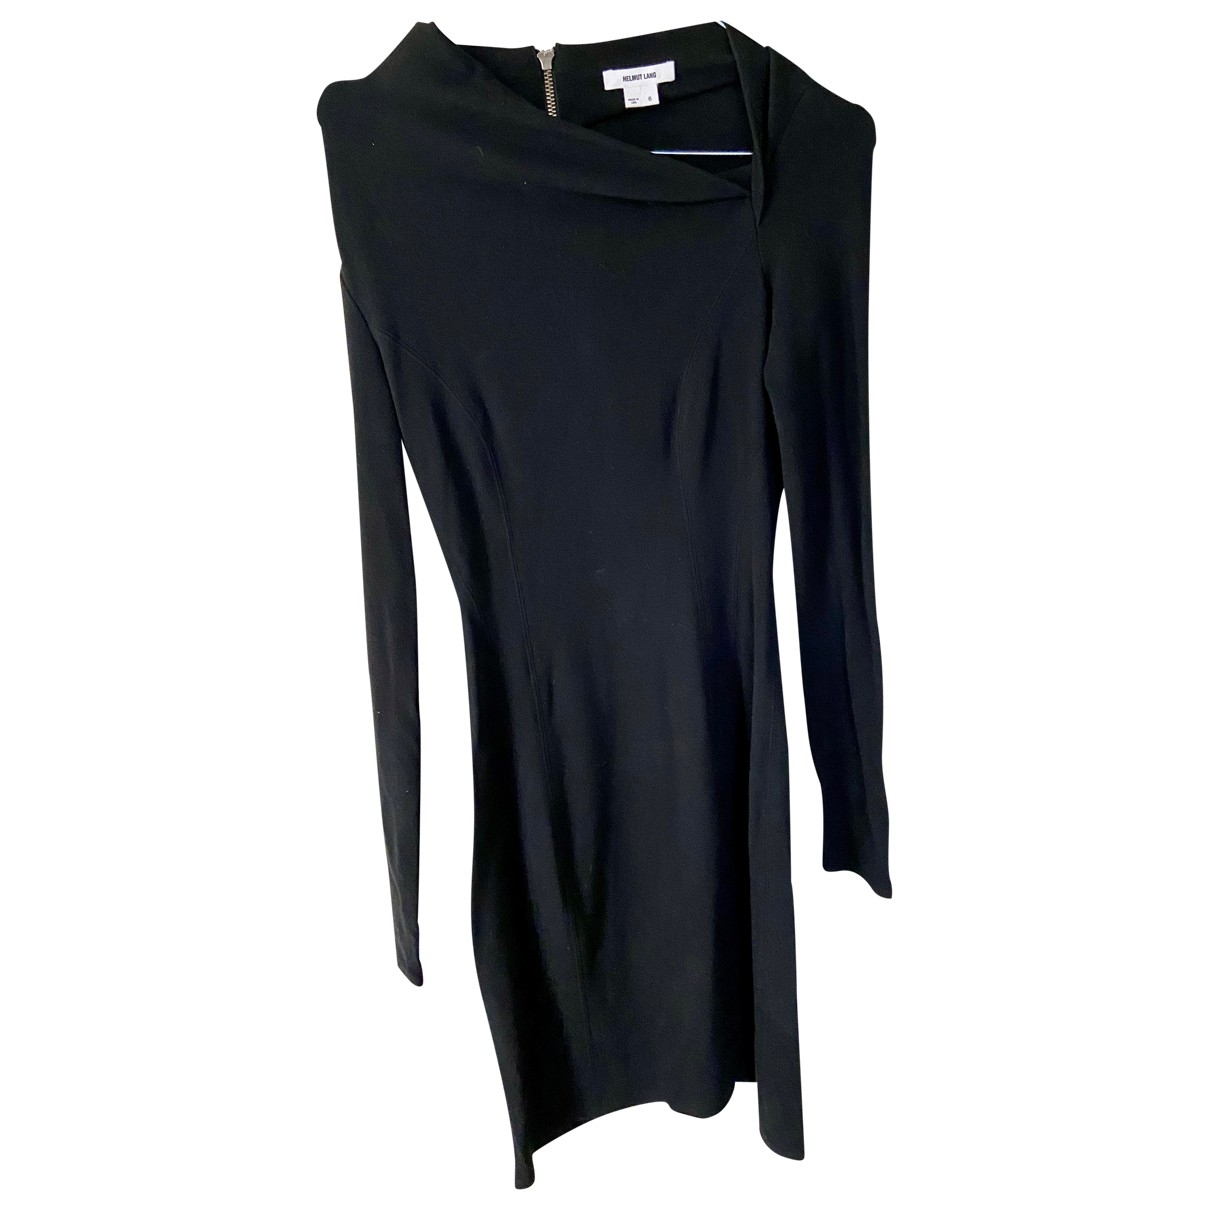 Helmut Lang \N Black dress for Women 6 US